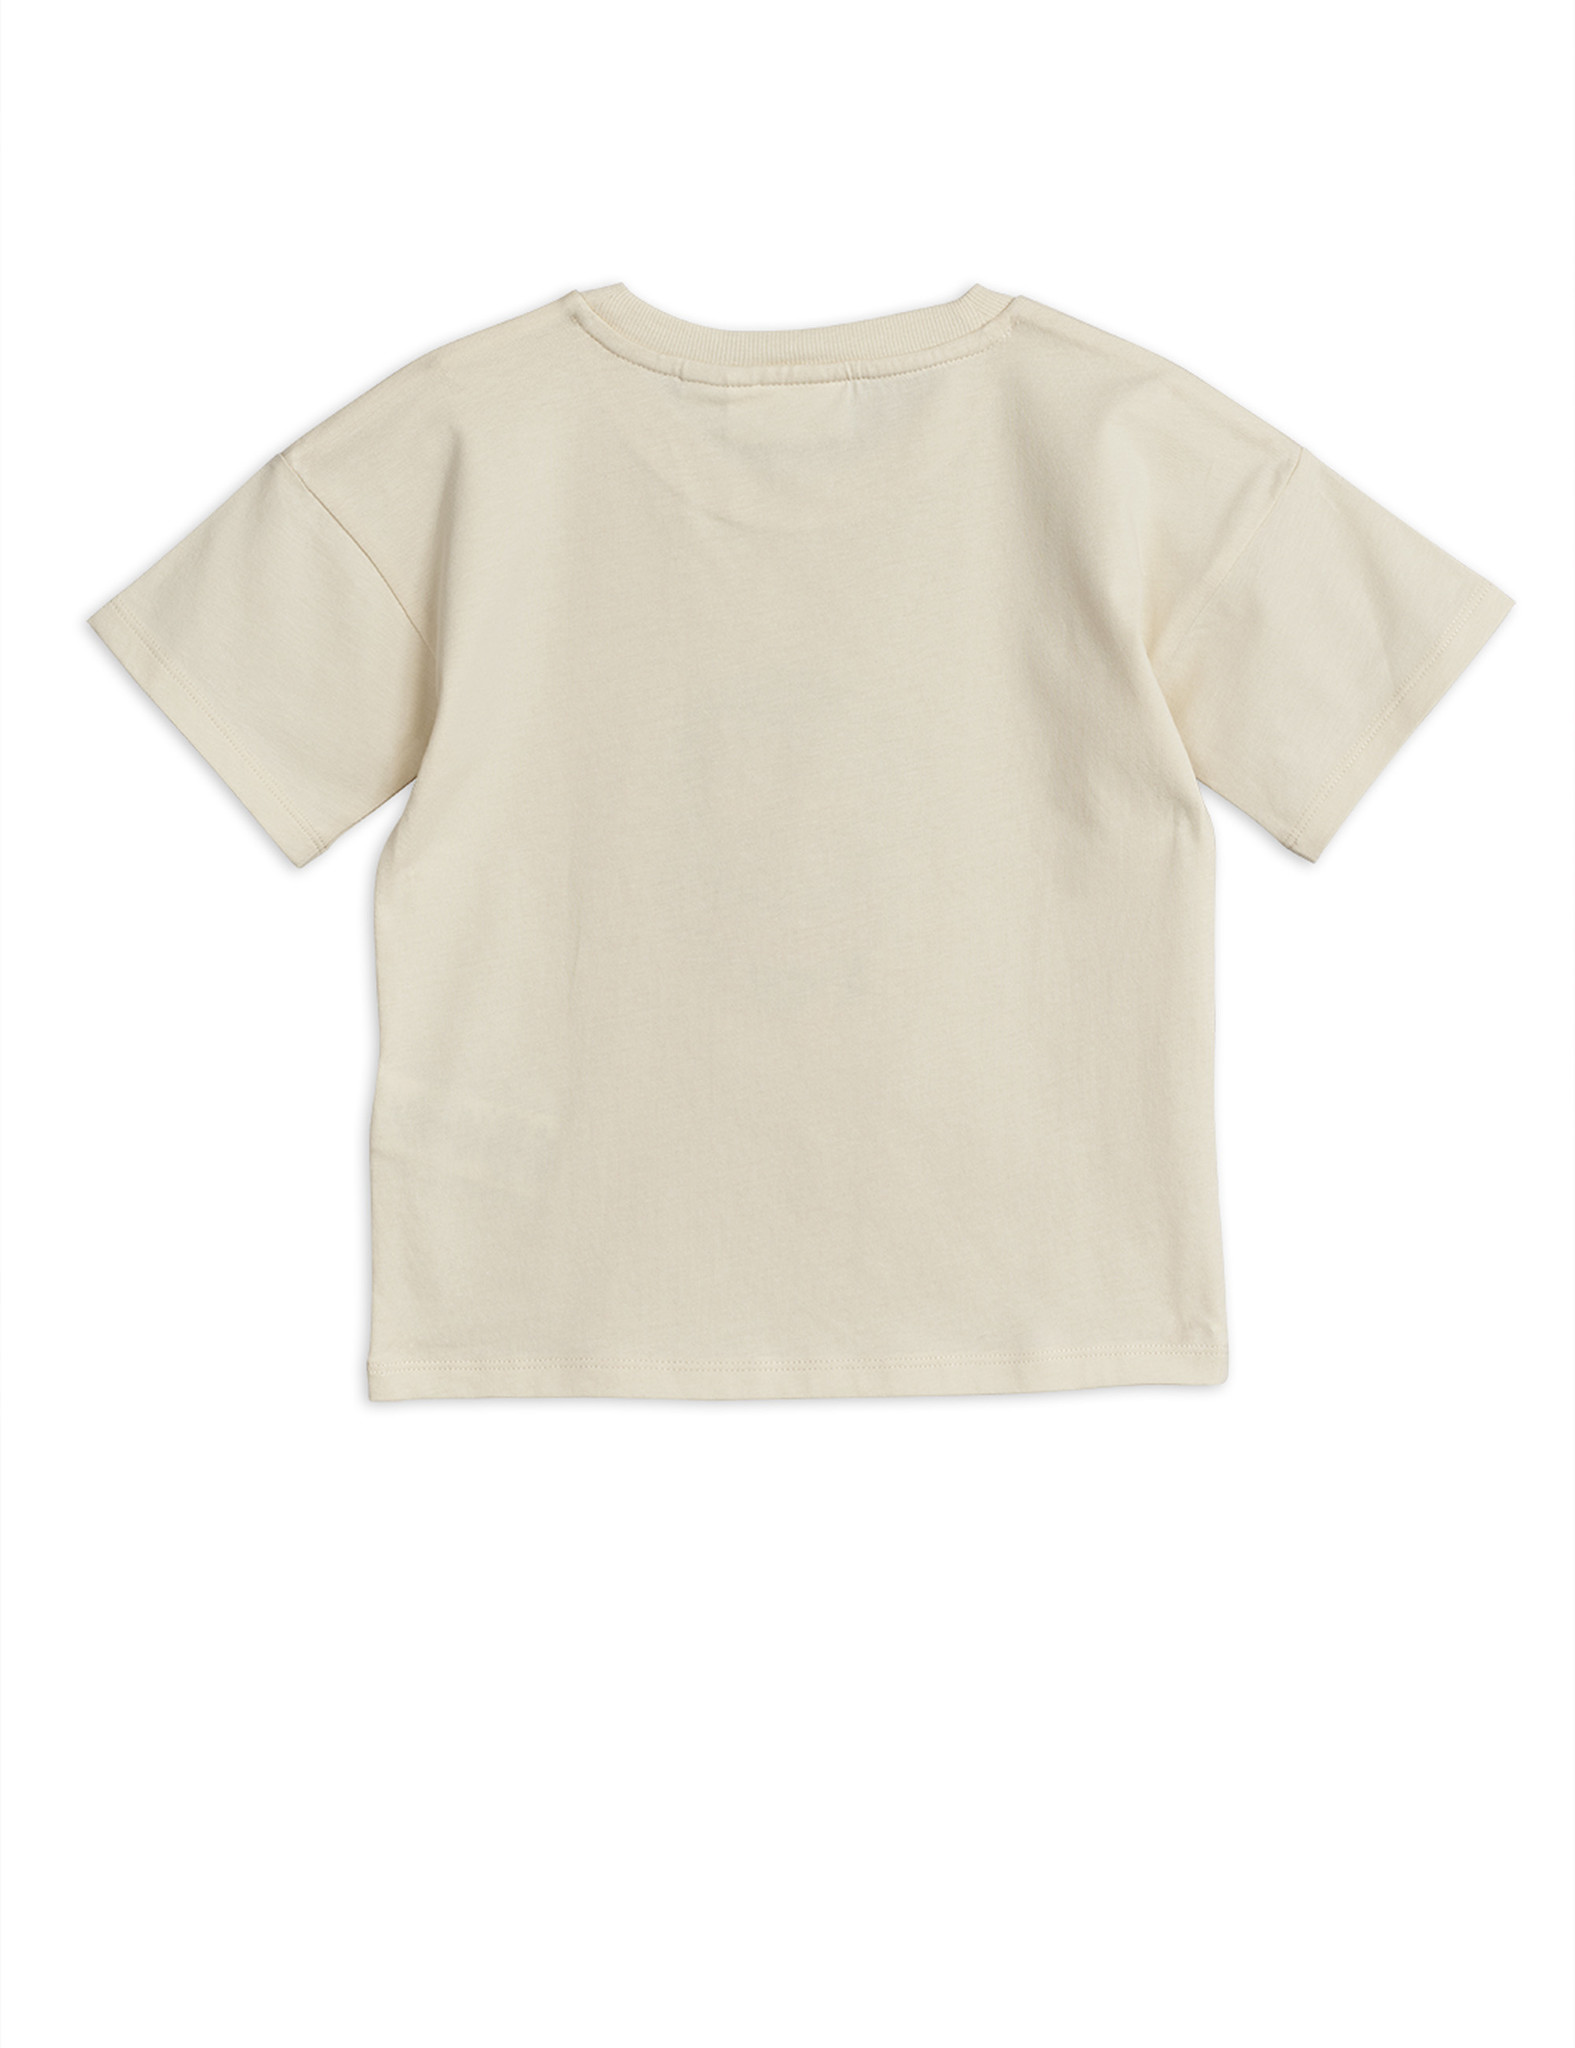 Panther badge ss tee - Offwhite-2